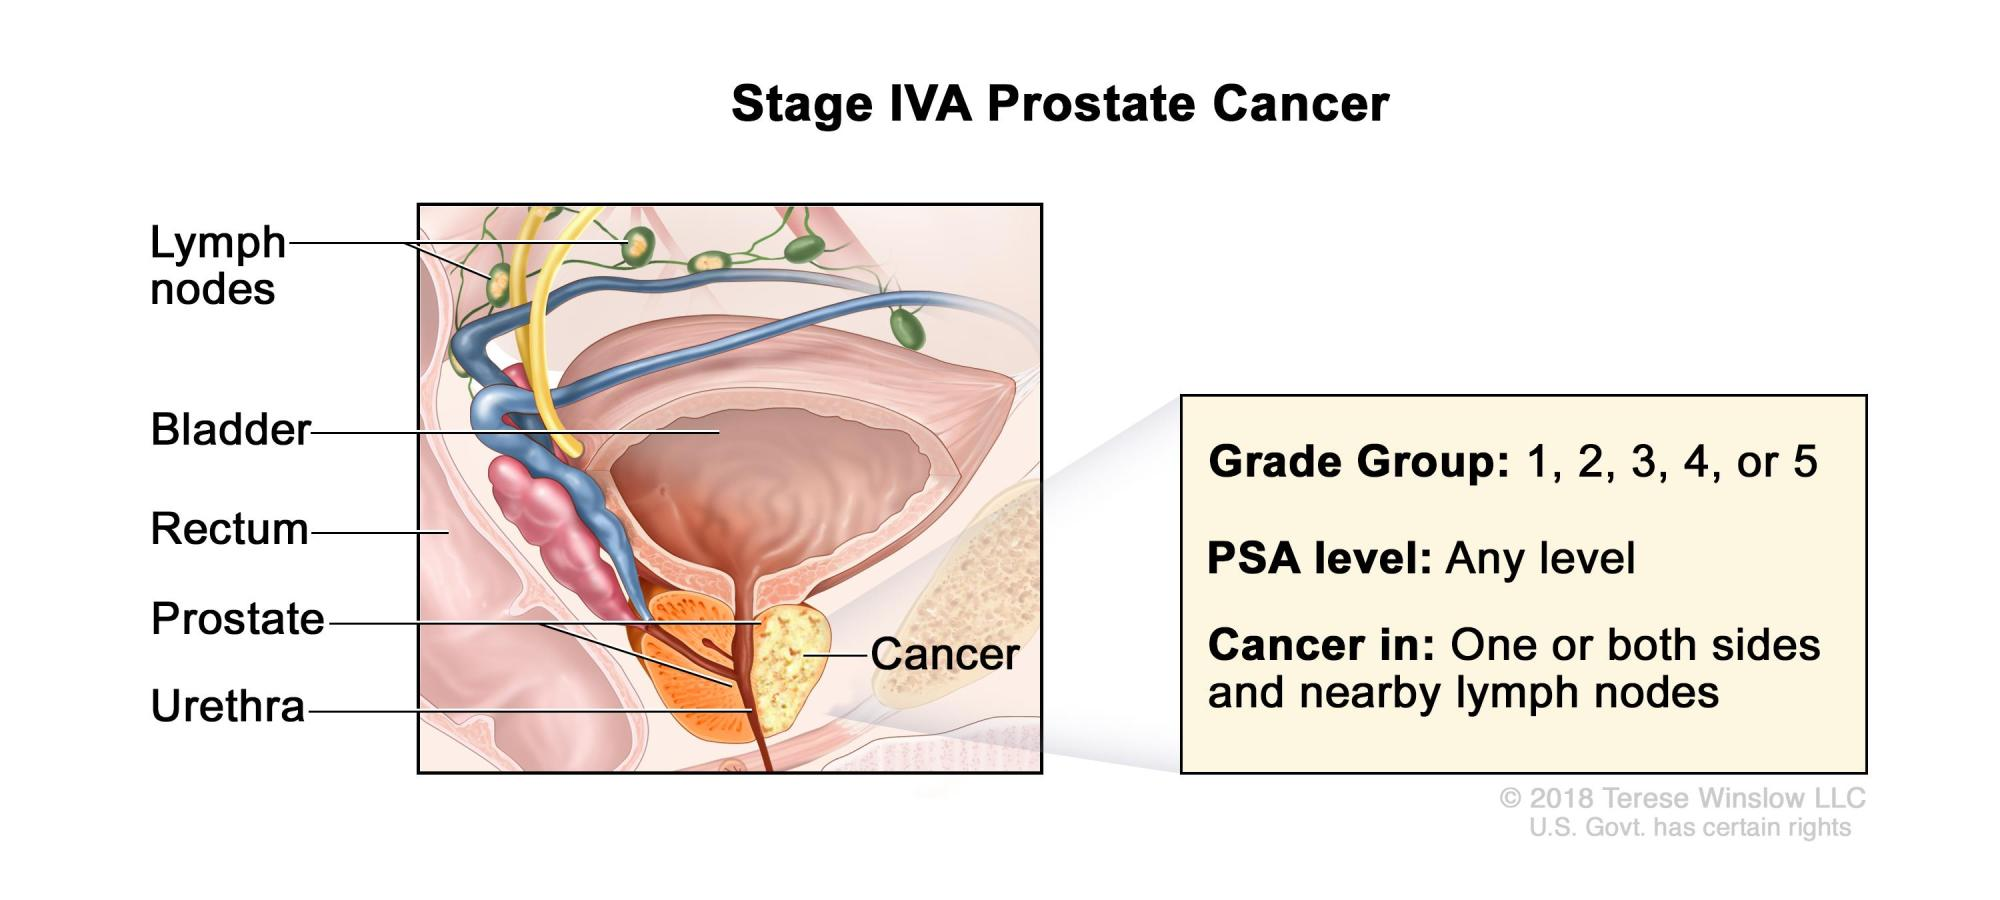 hight resolution of stage iva prostate cancer cancer is found in one or both sides of the prostate and may have spread to the seminal vesicles or to nearby tissue or organs